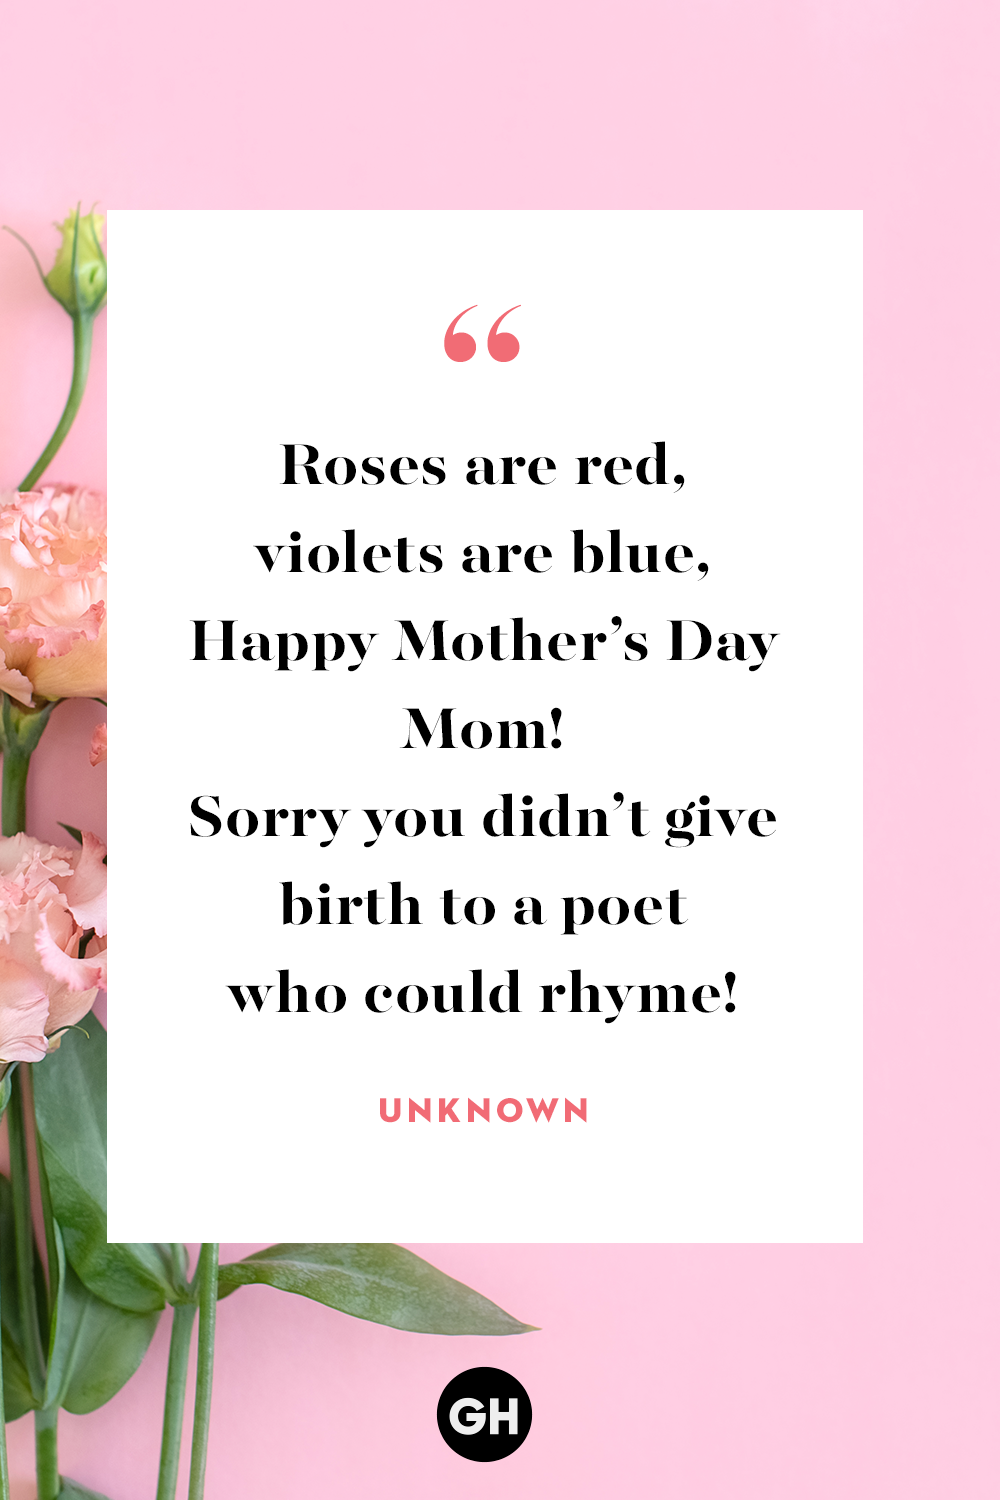 15 Best Mother S Day Poems That Celebrate Mom Poems About Mother S Love These very meaningful verses from the. 15 best mother s day poems that